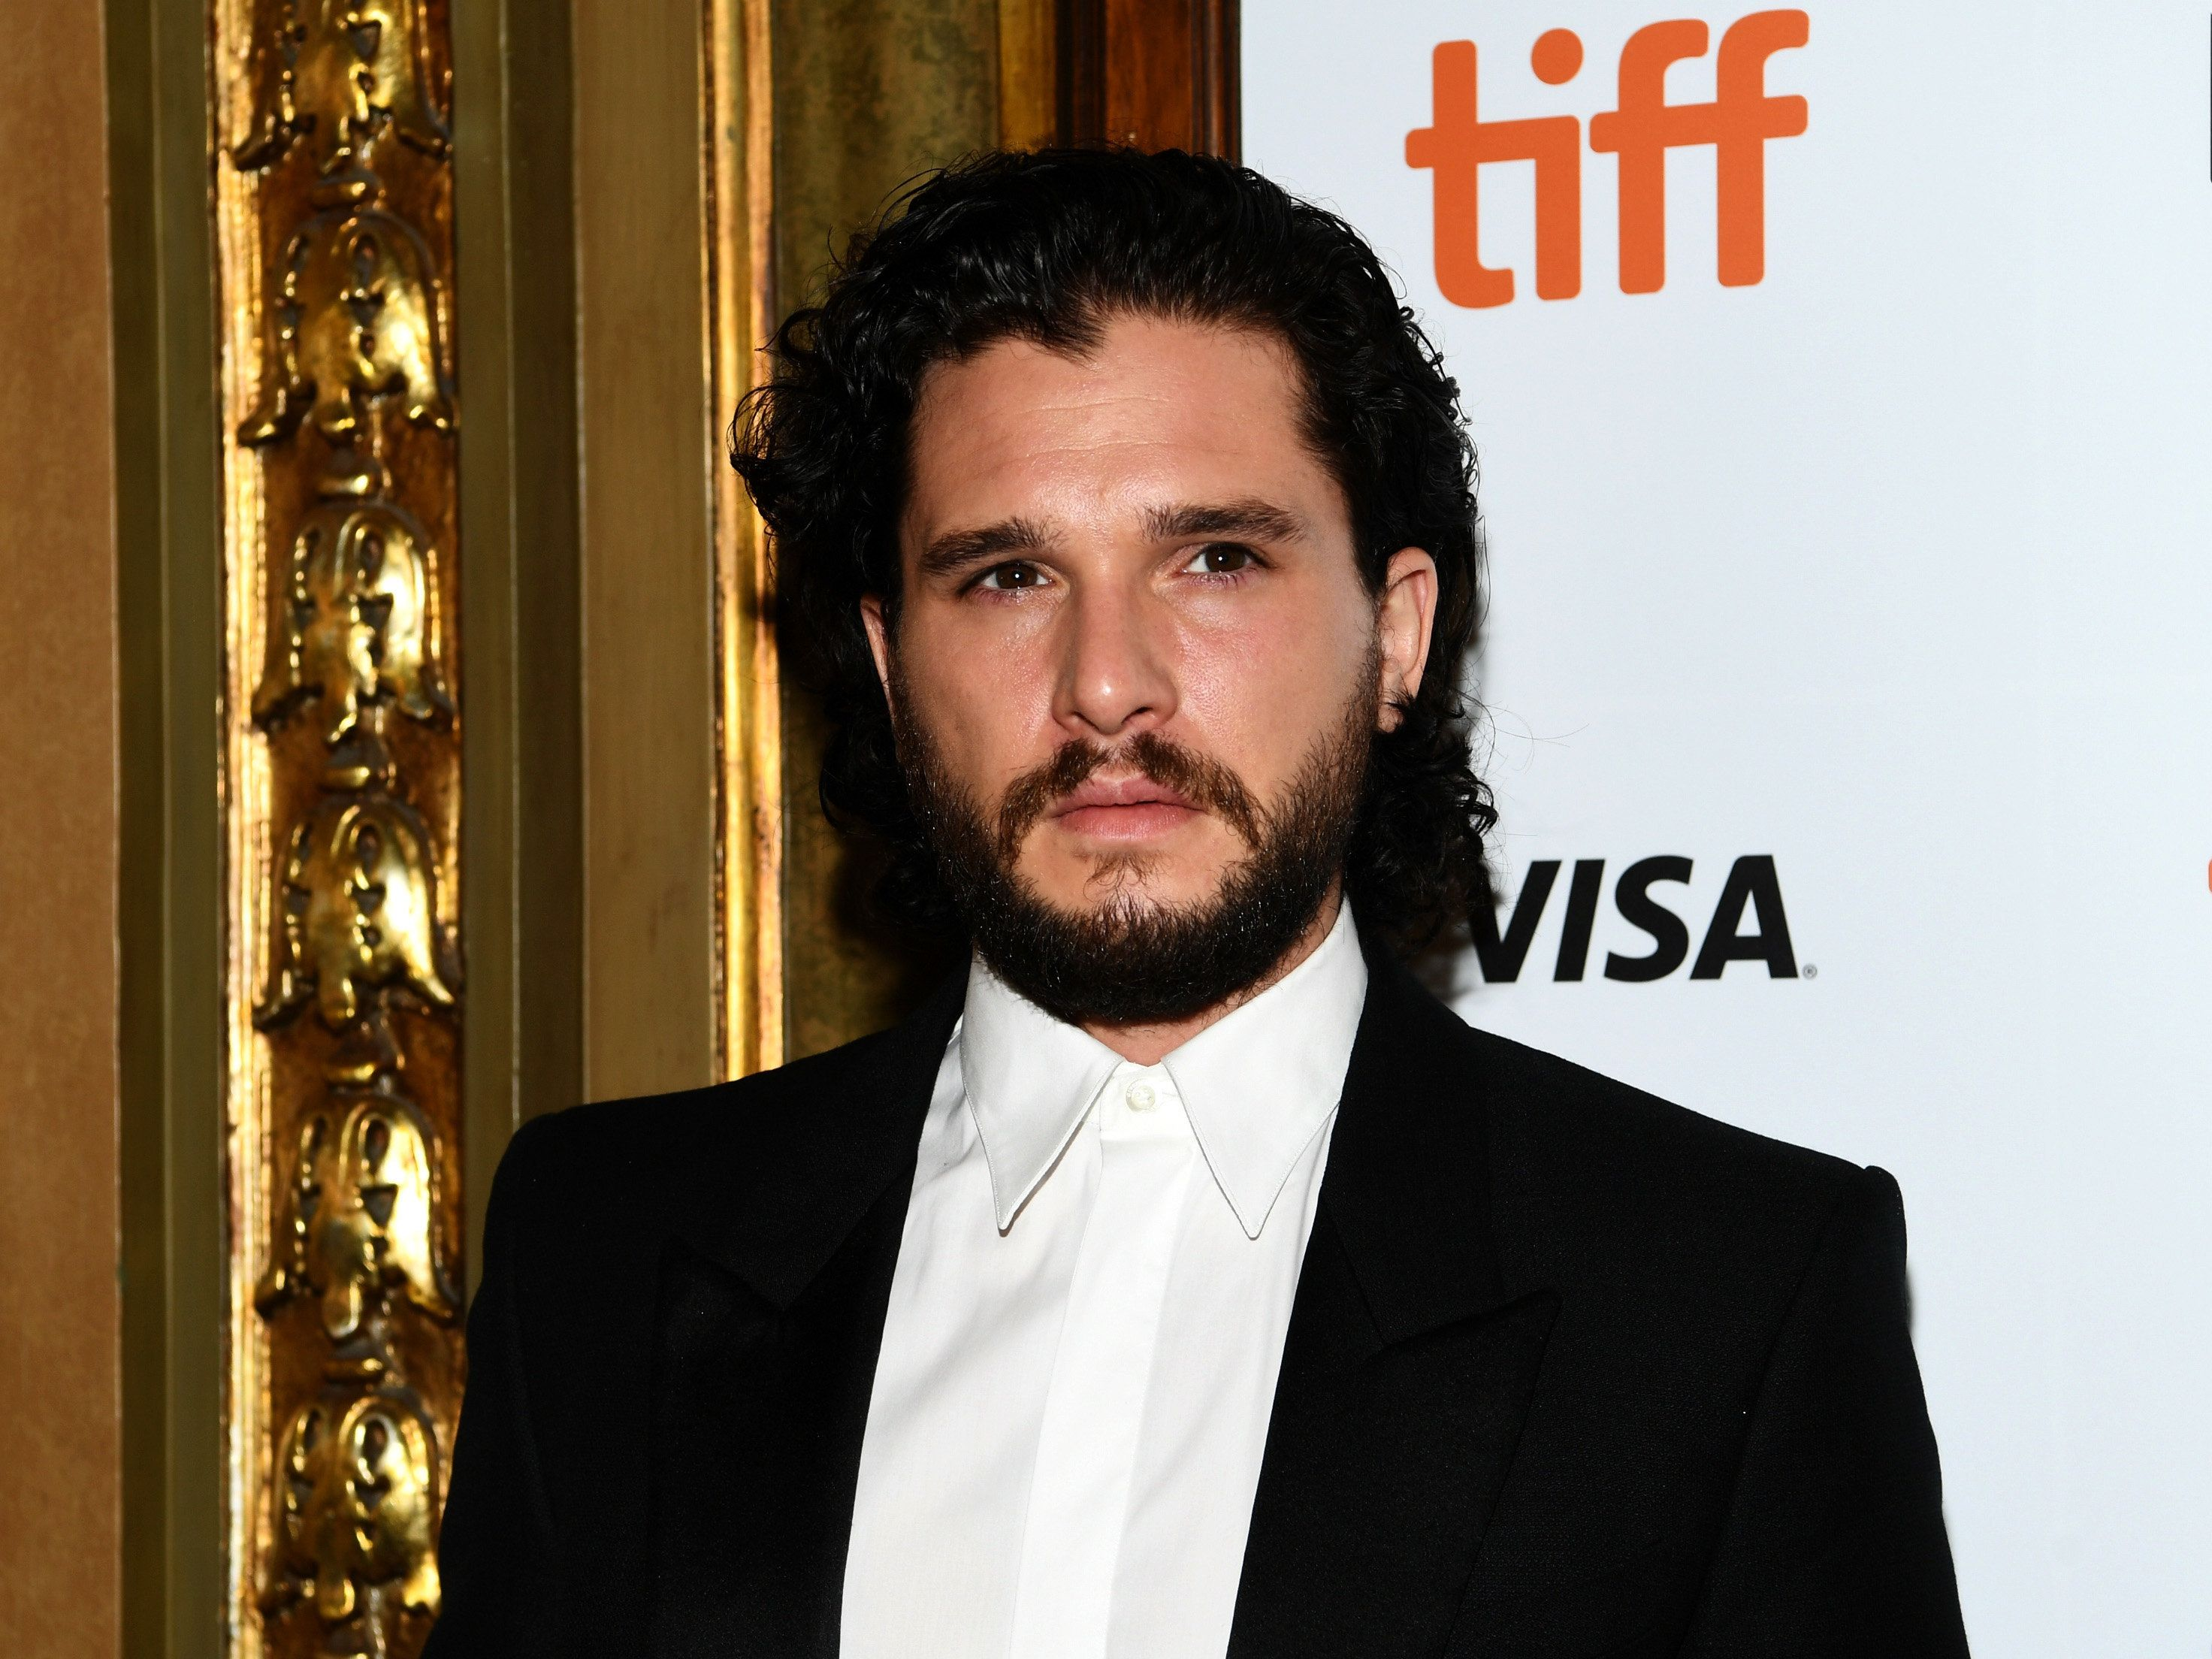 TORONTO, ON - SEPTEMBER 10:  Kit Harington attends the 'The Death And Life Of John F. Donovan' premiere during 2018 Toronto International Film Festival at Winter Garden Theatre on September 10, 2018 in Toronto, Canada.  (Photo by Emma McIntyre/Getty Images)